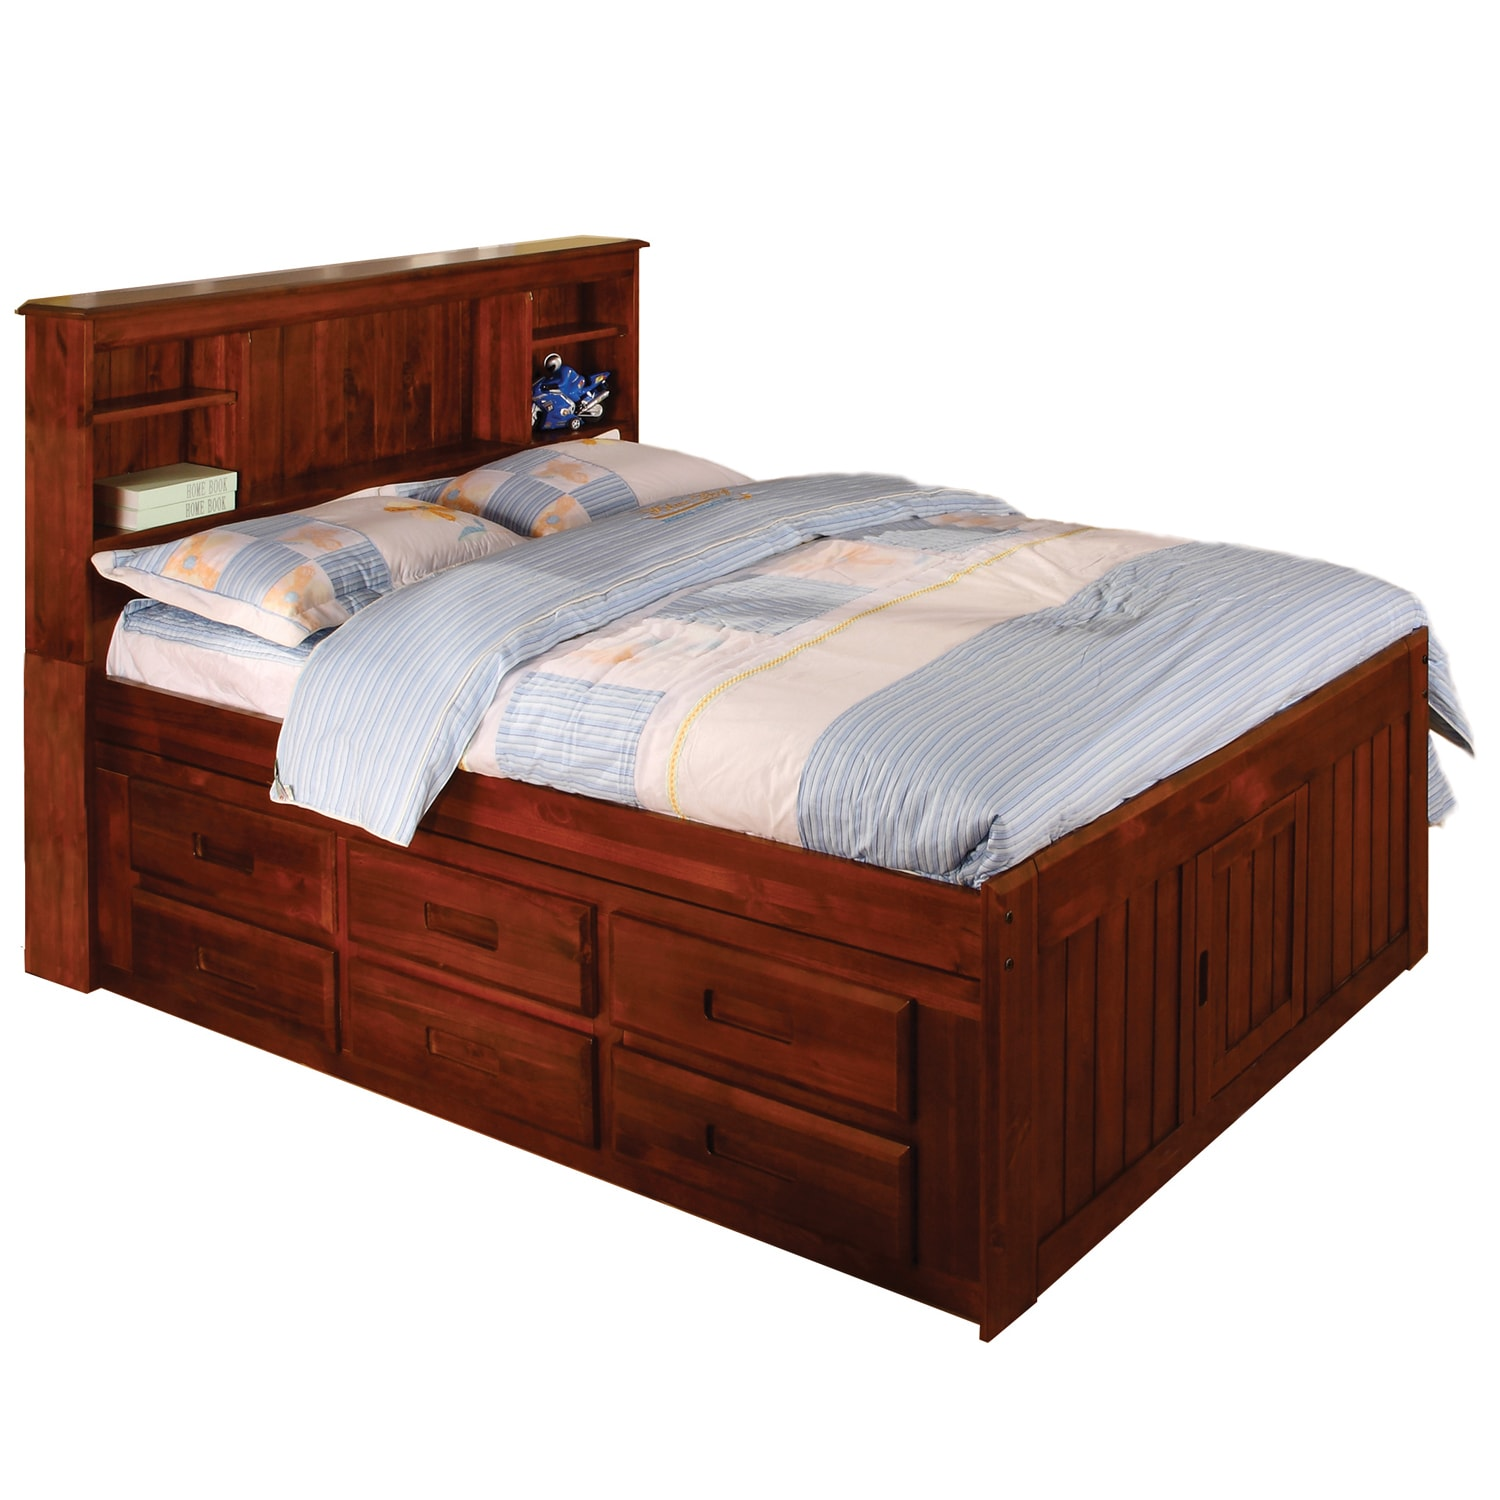 American Furniture Classics Model 2821 12 Bcm Solid Pine